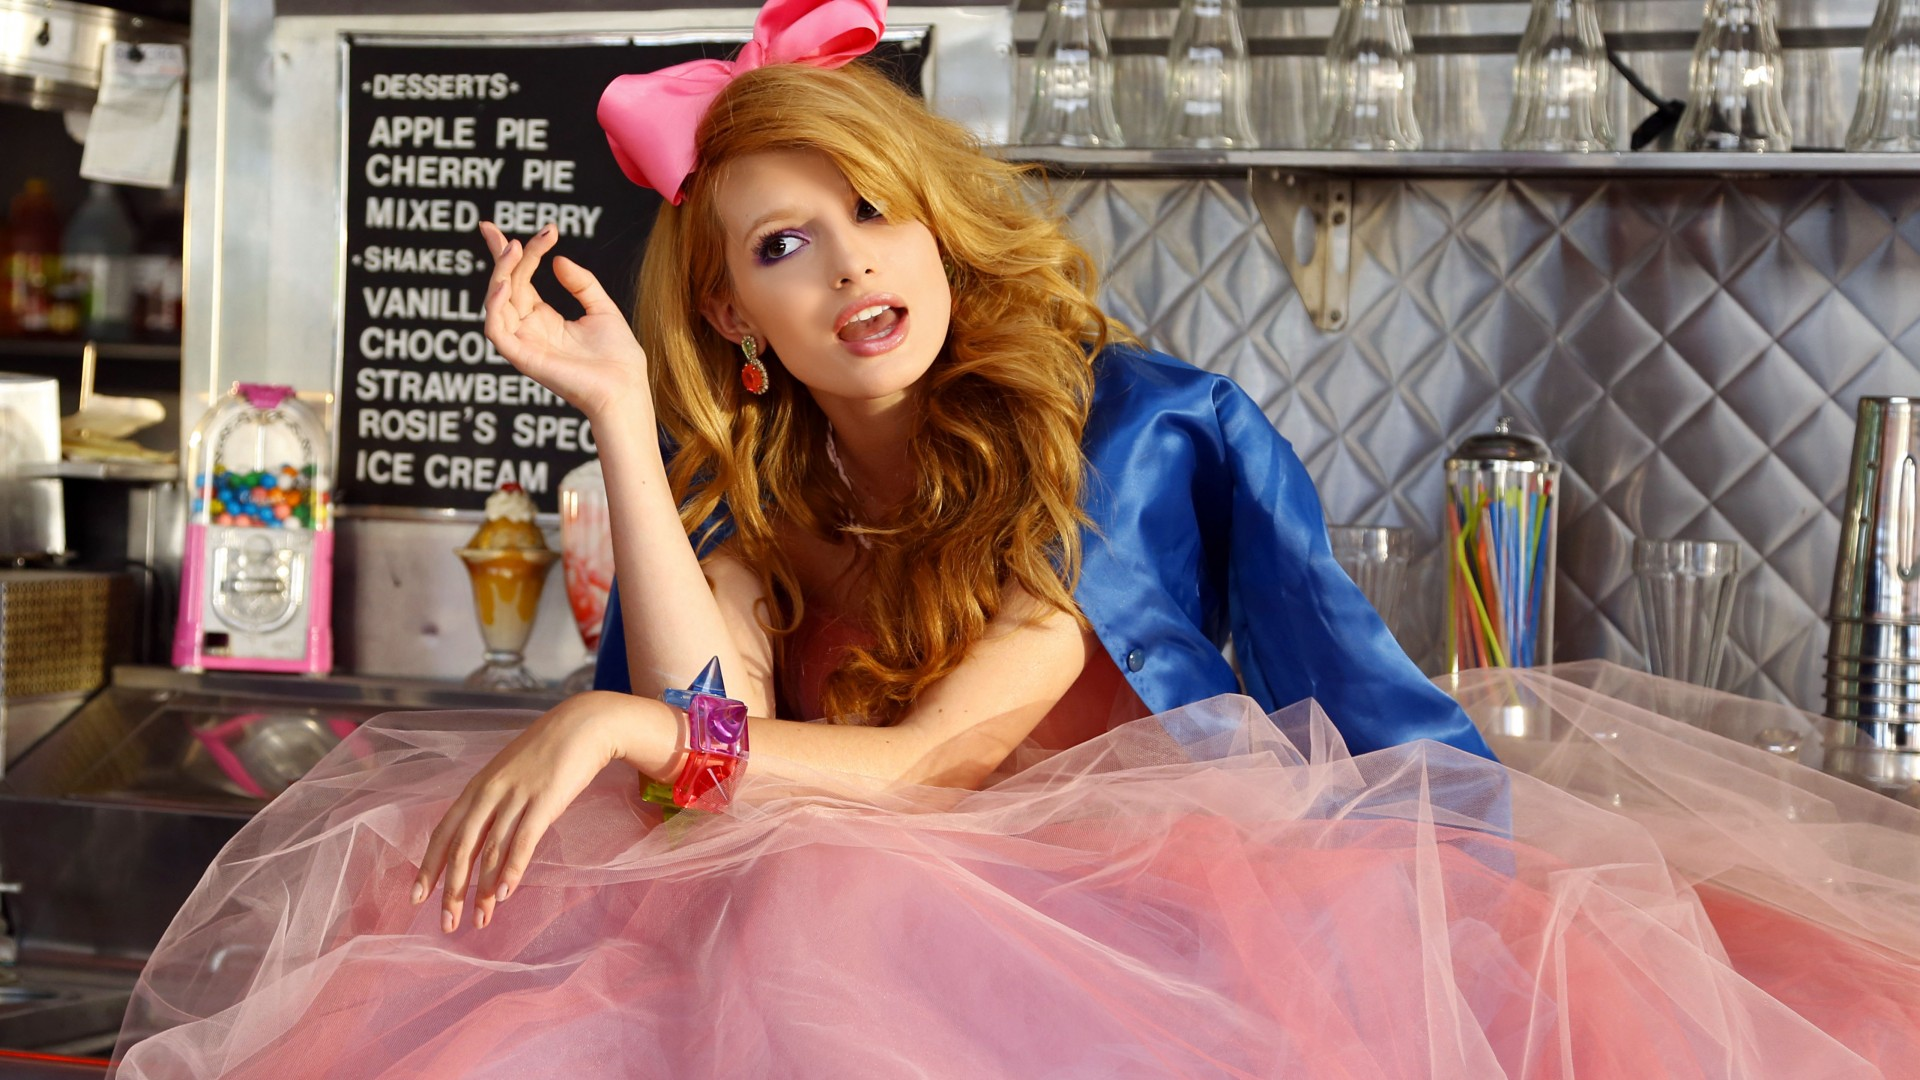 Bella Thorne, Most Popular Celebs in 2015, actress, singer, model, dancer, The Duff (horizontal)